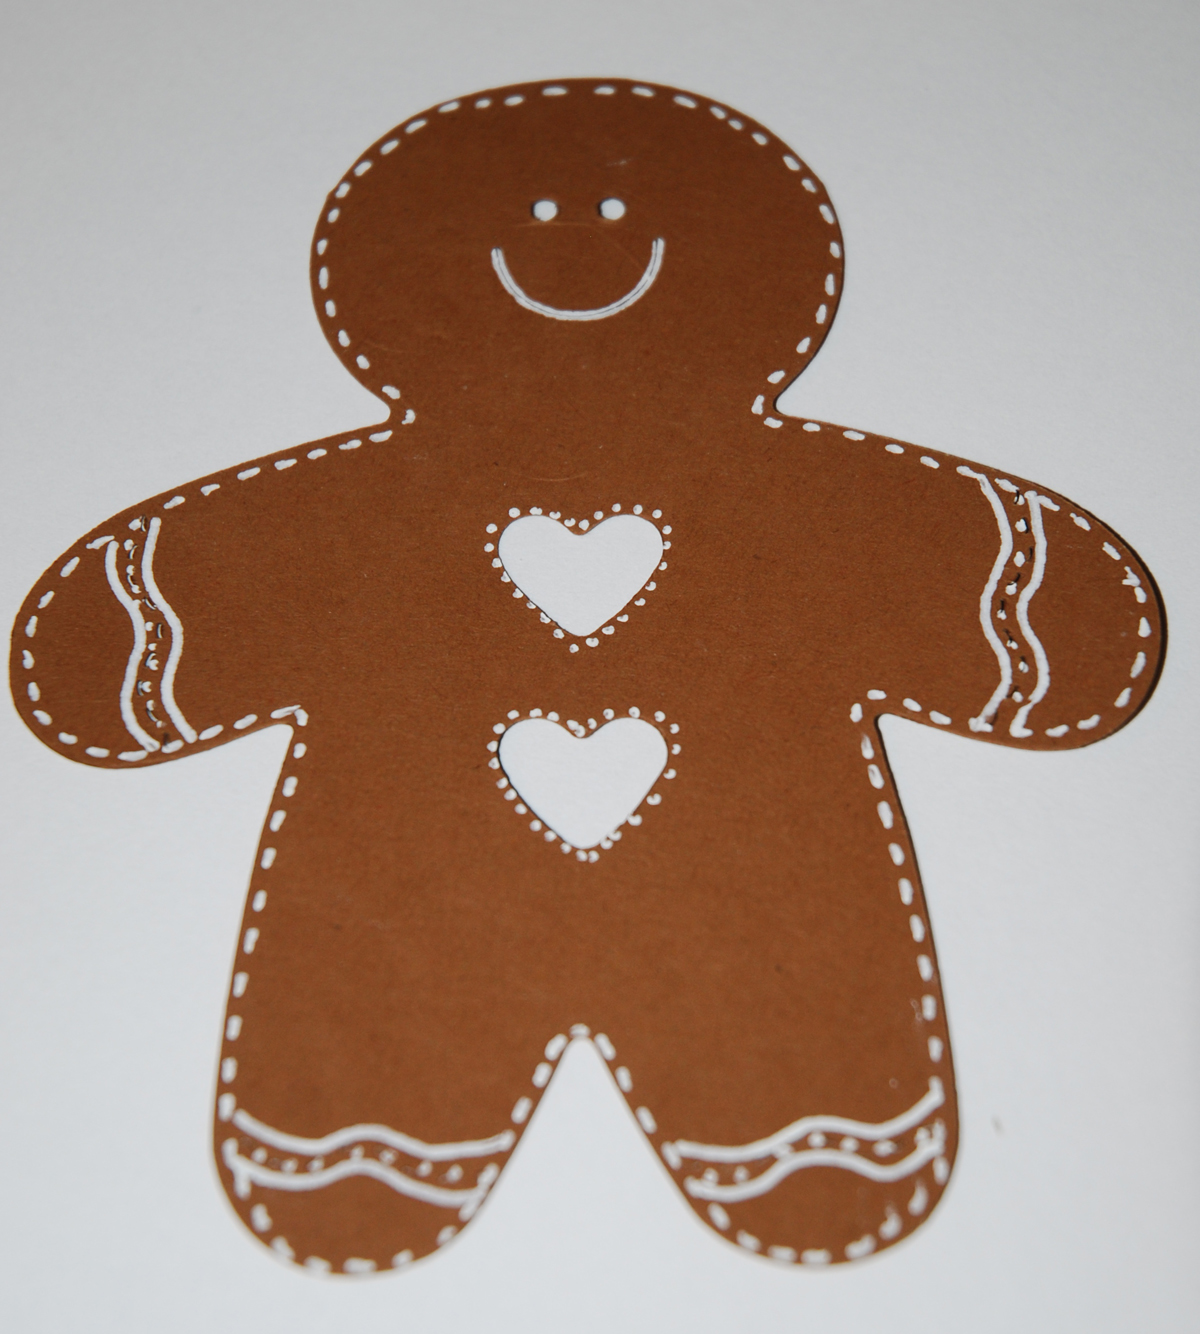 Gingerbread Man Writing Template Embellish the gingerbread man